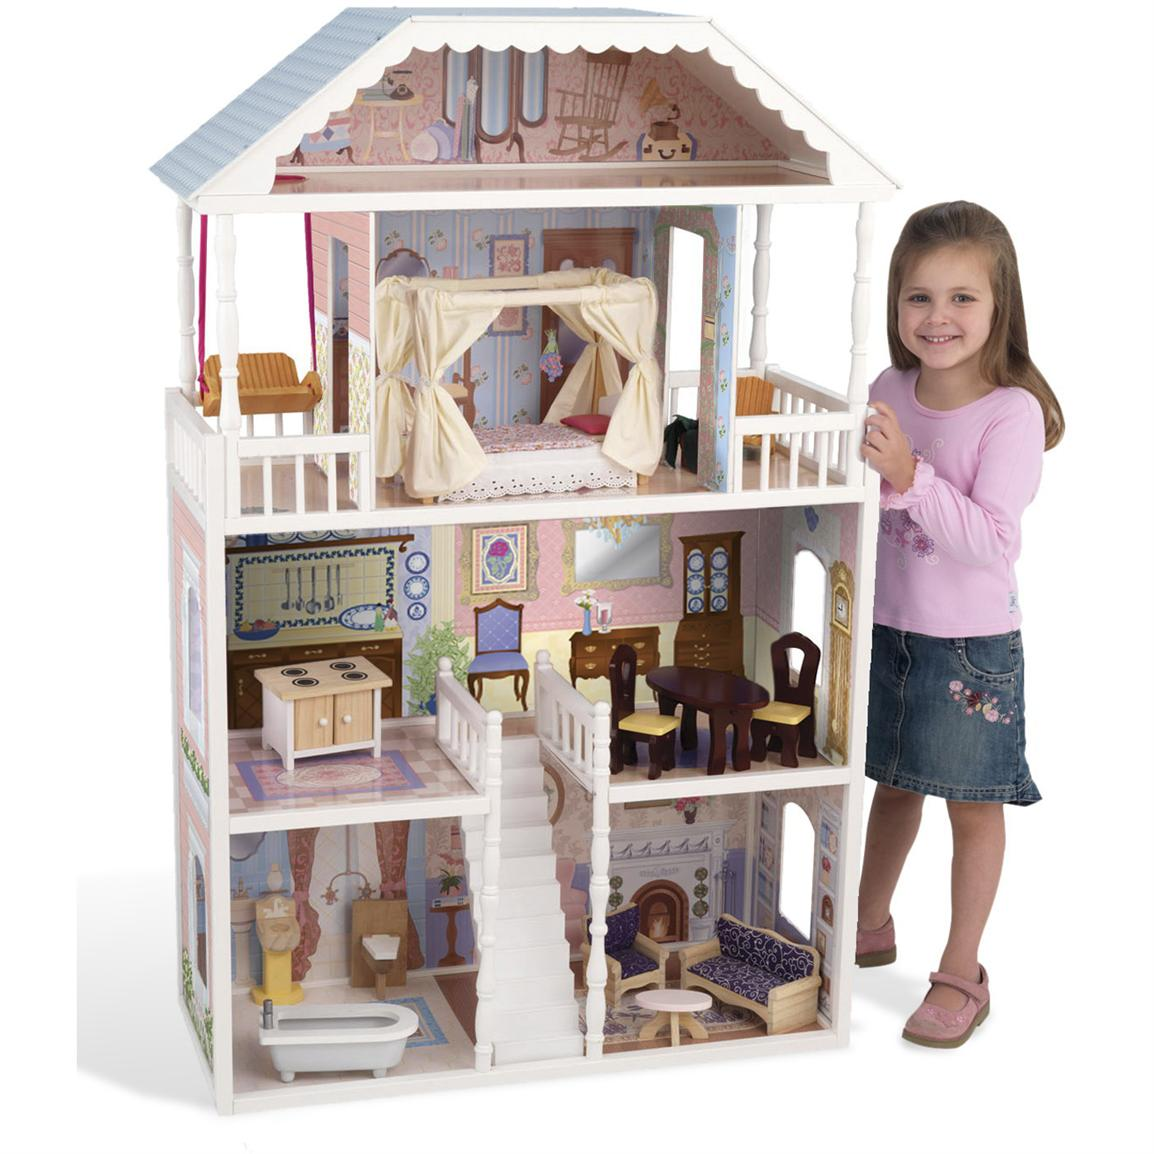 charming kidkraft dollhouse in triple tier design and white theme with blue roof for nursery decor ideas